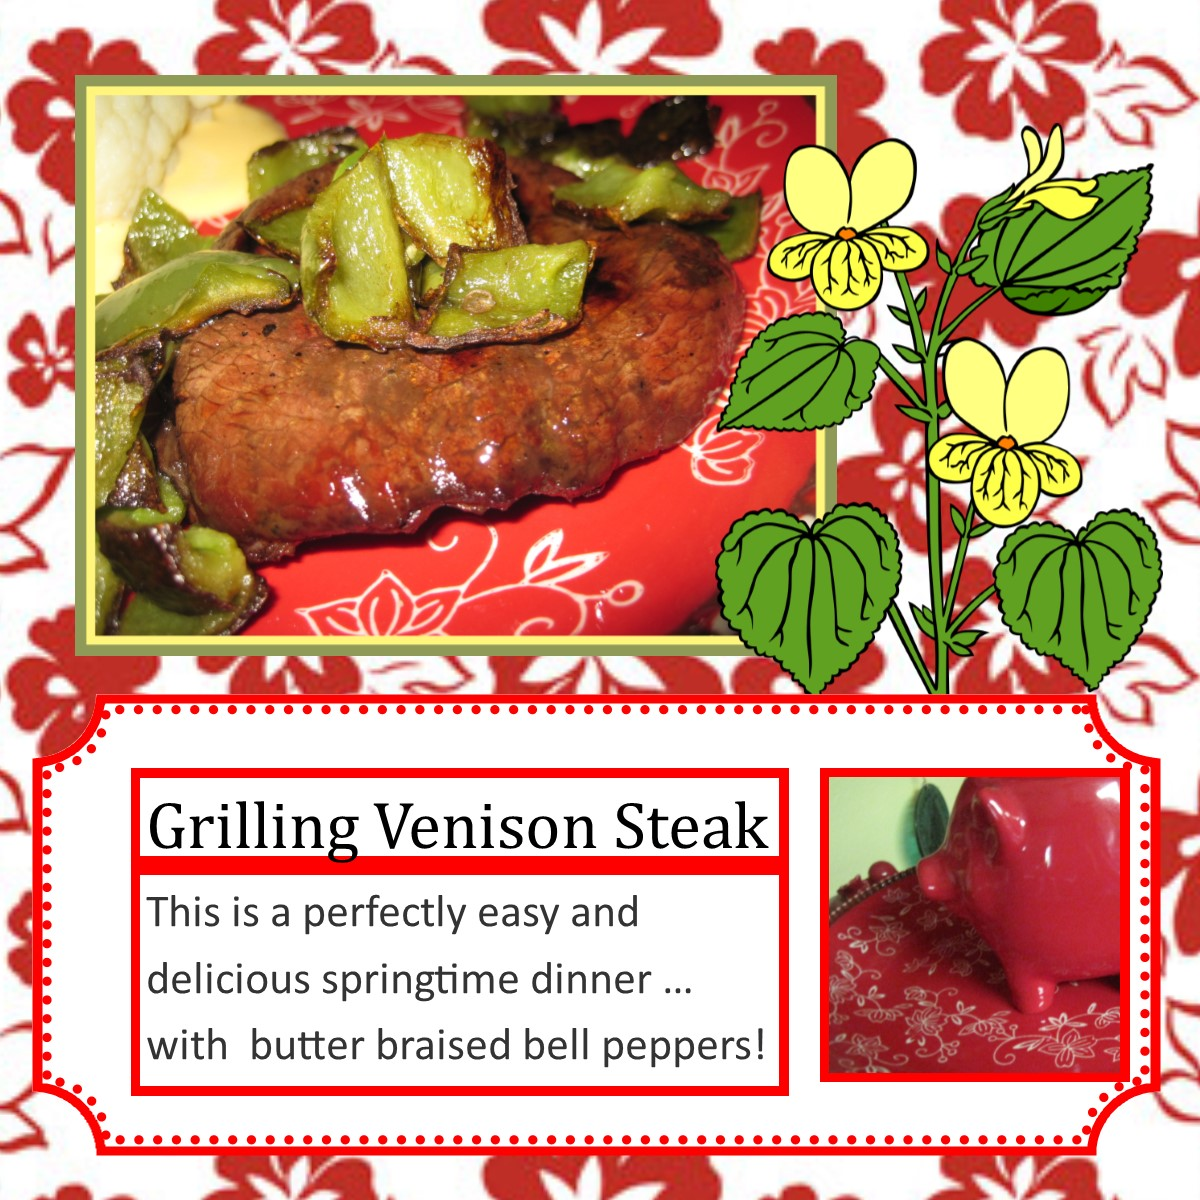 how to cook venison steak on the grill